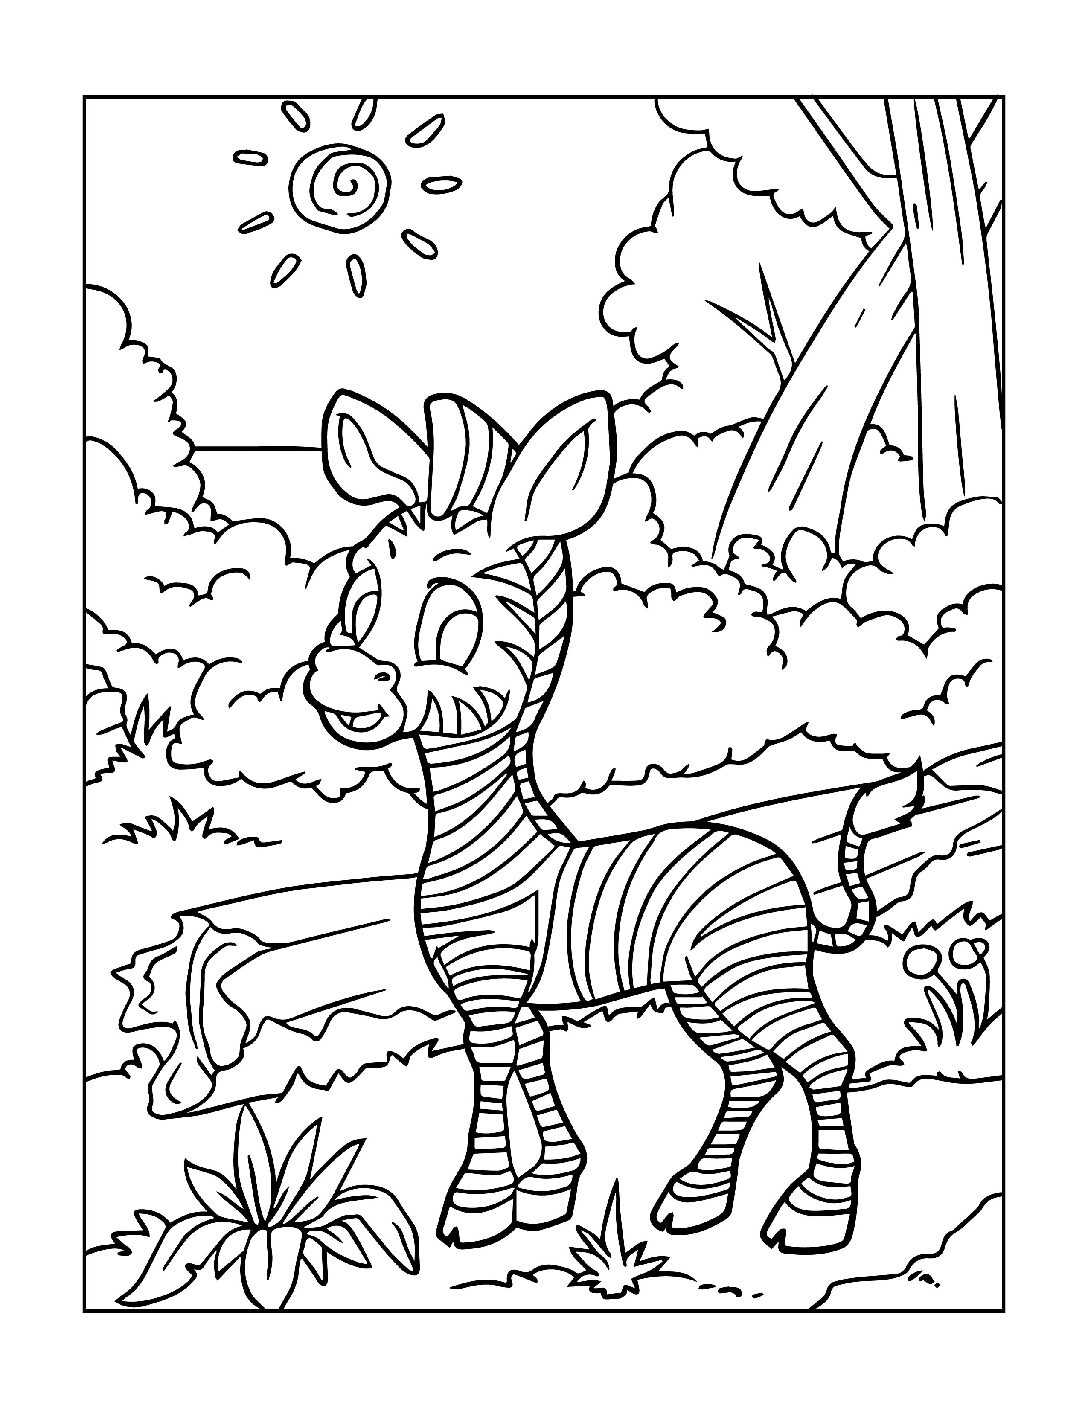 zoo animals colouring best zebra coloring pages for kids zebra coloring pages colouring zoo animals